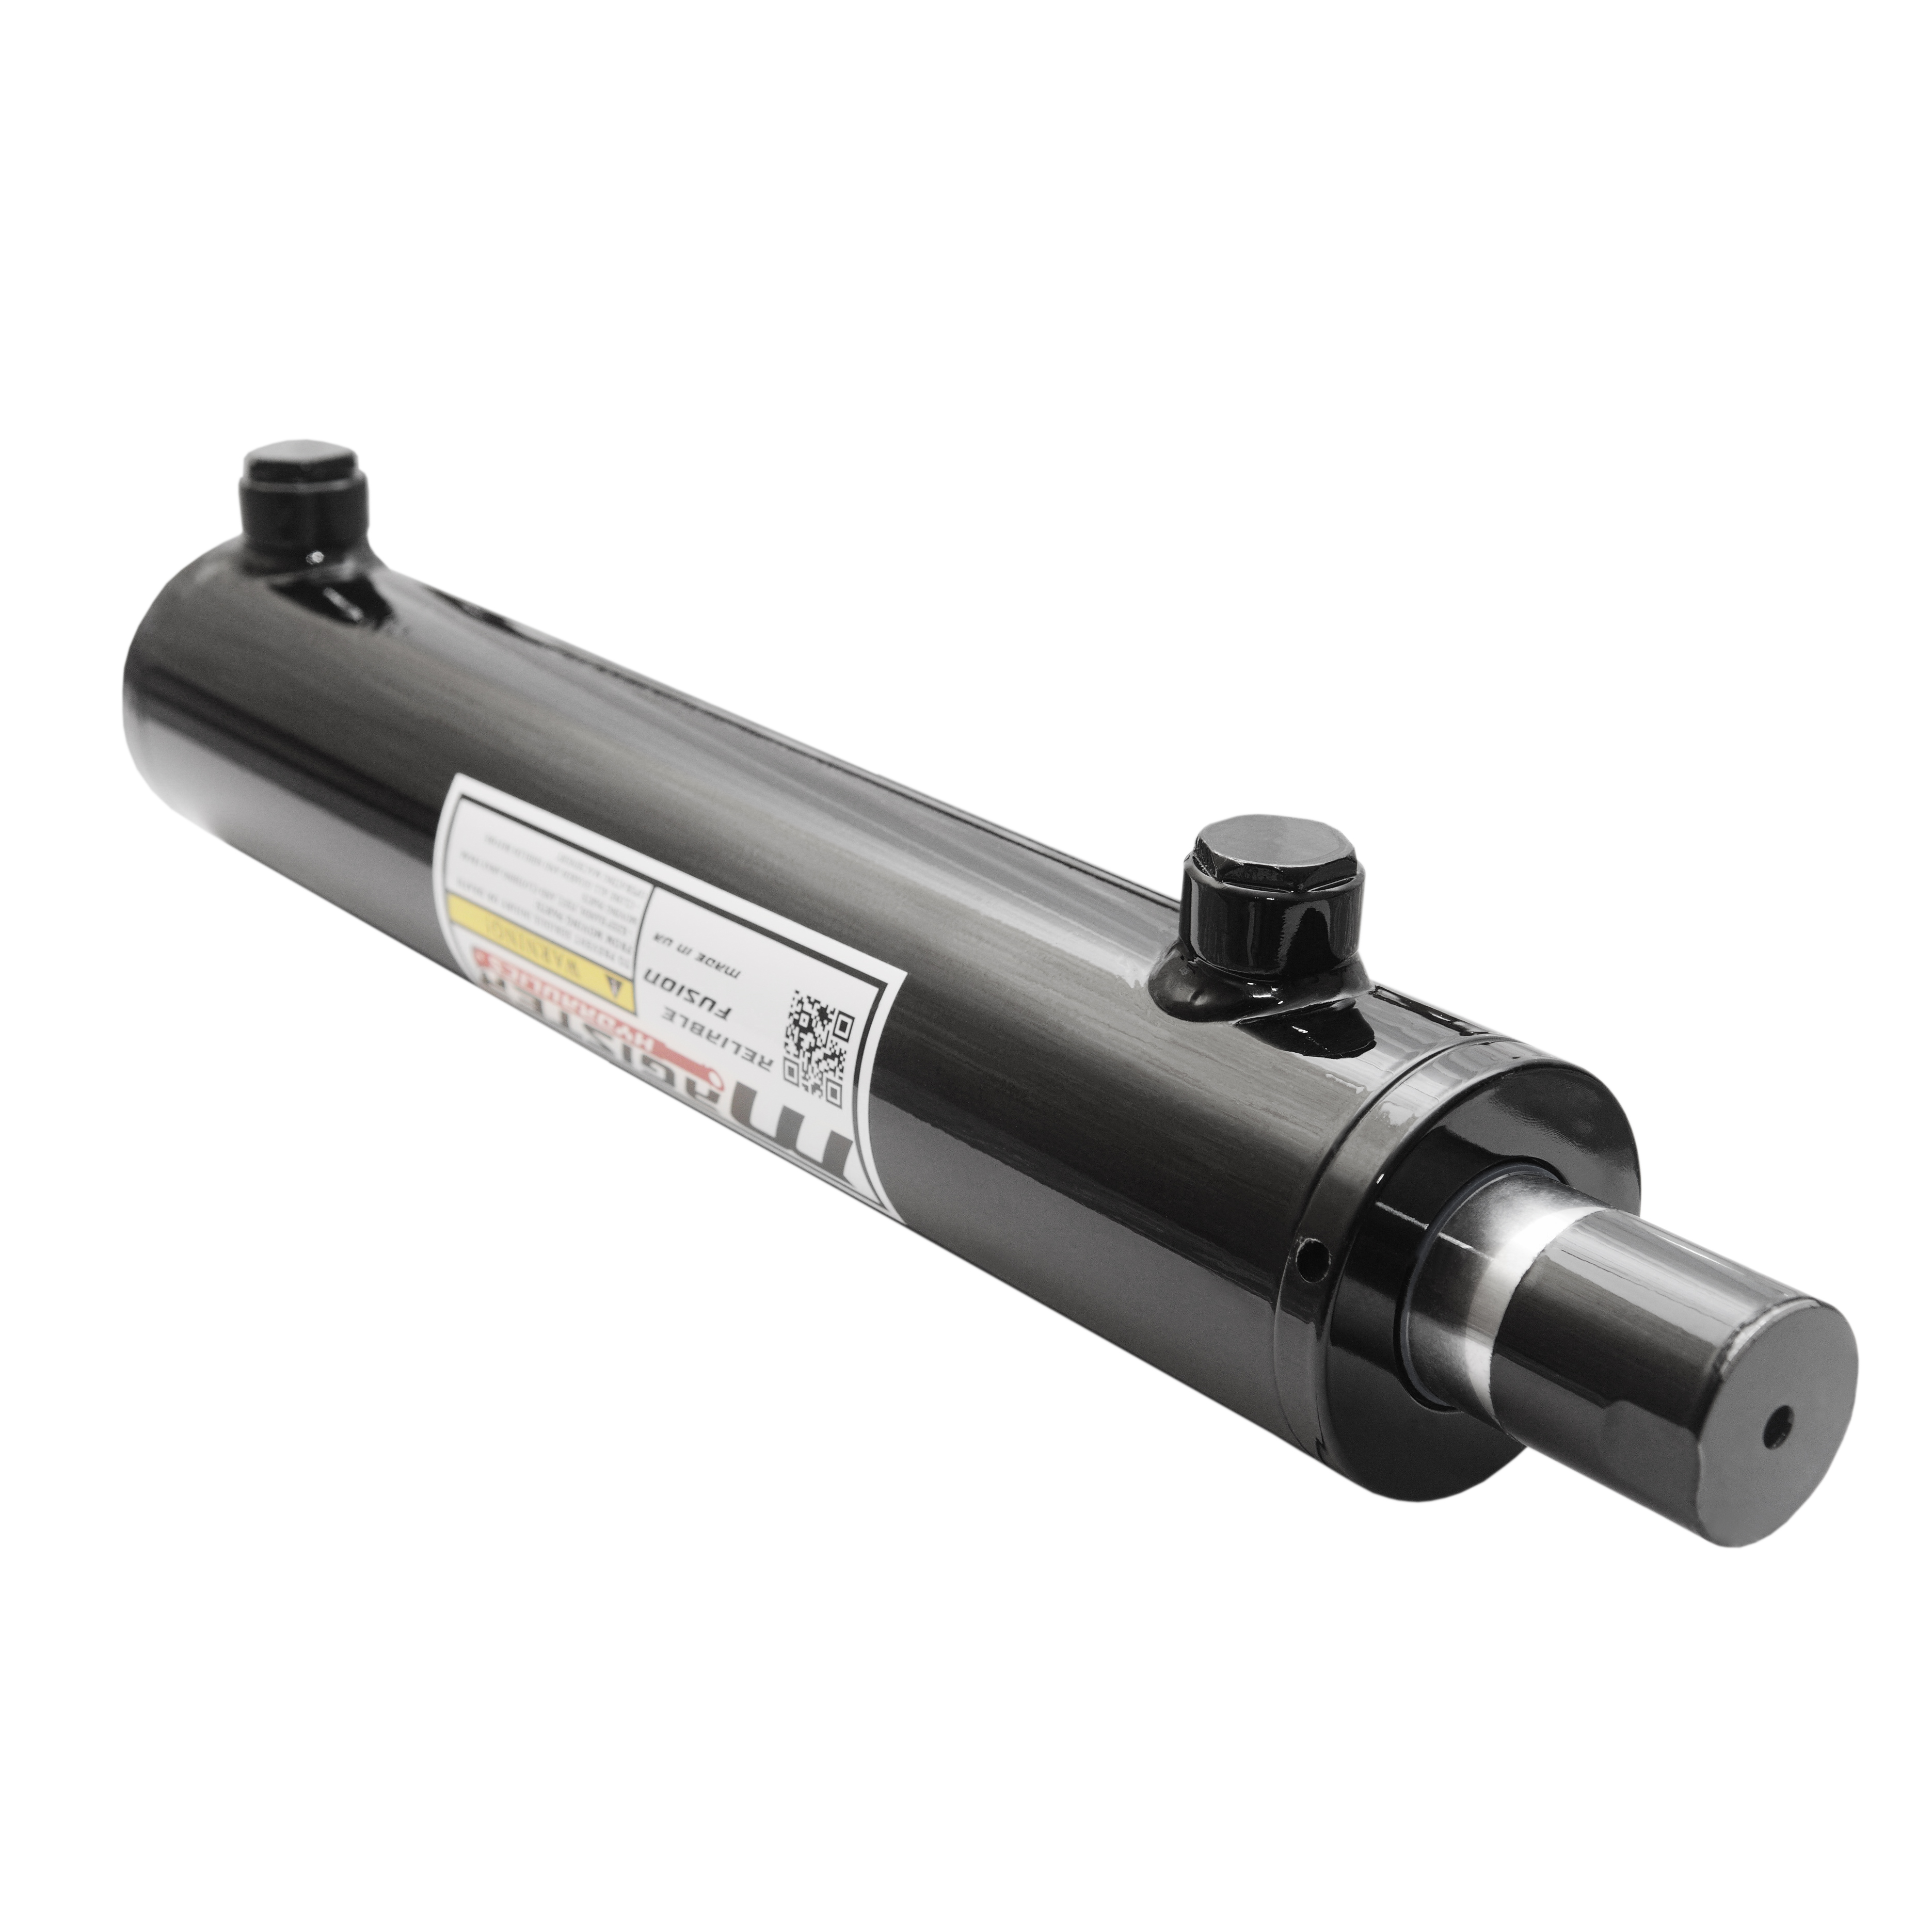 2 bore x 23 stroke hydraulic cylinder, welded universal double acting cylinder | Magister Hydraulics